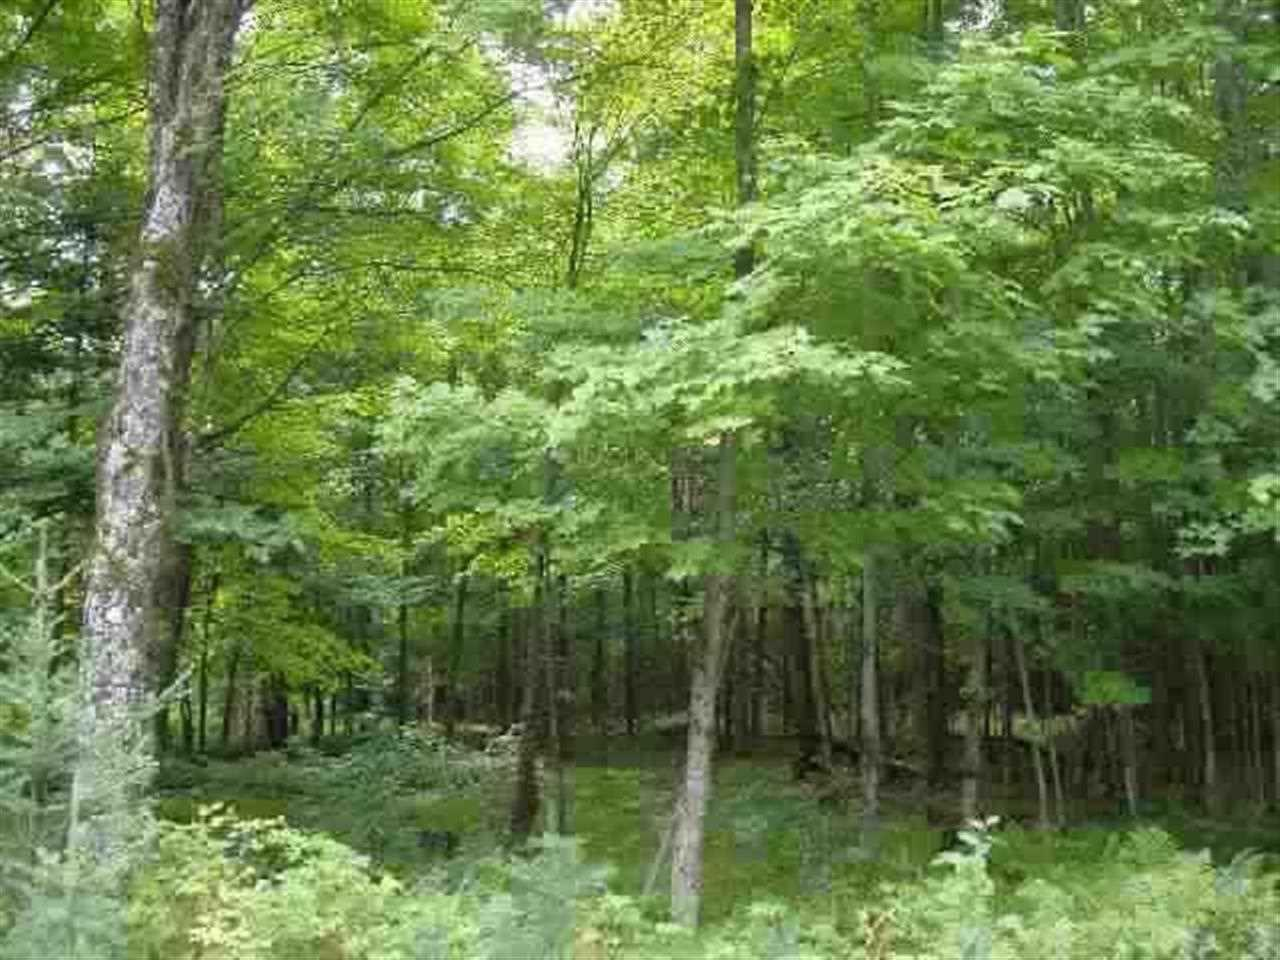 Mls 1098243 tbd twin rivers pcl 5 fence wi 54120 for Upper michigan real estate zillow